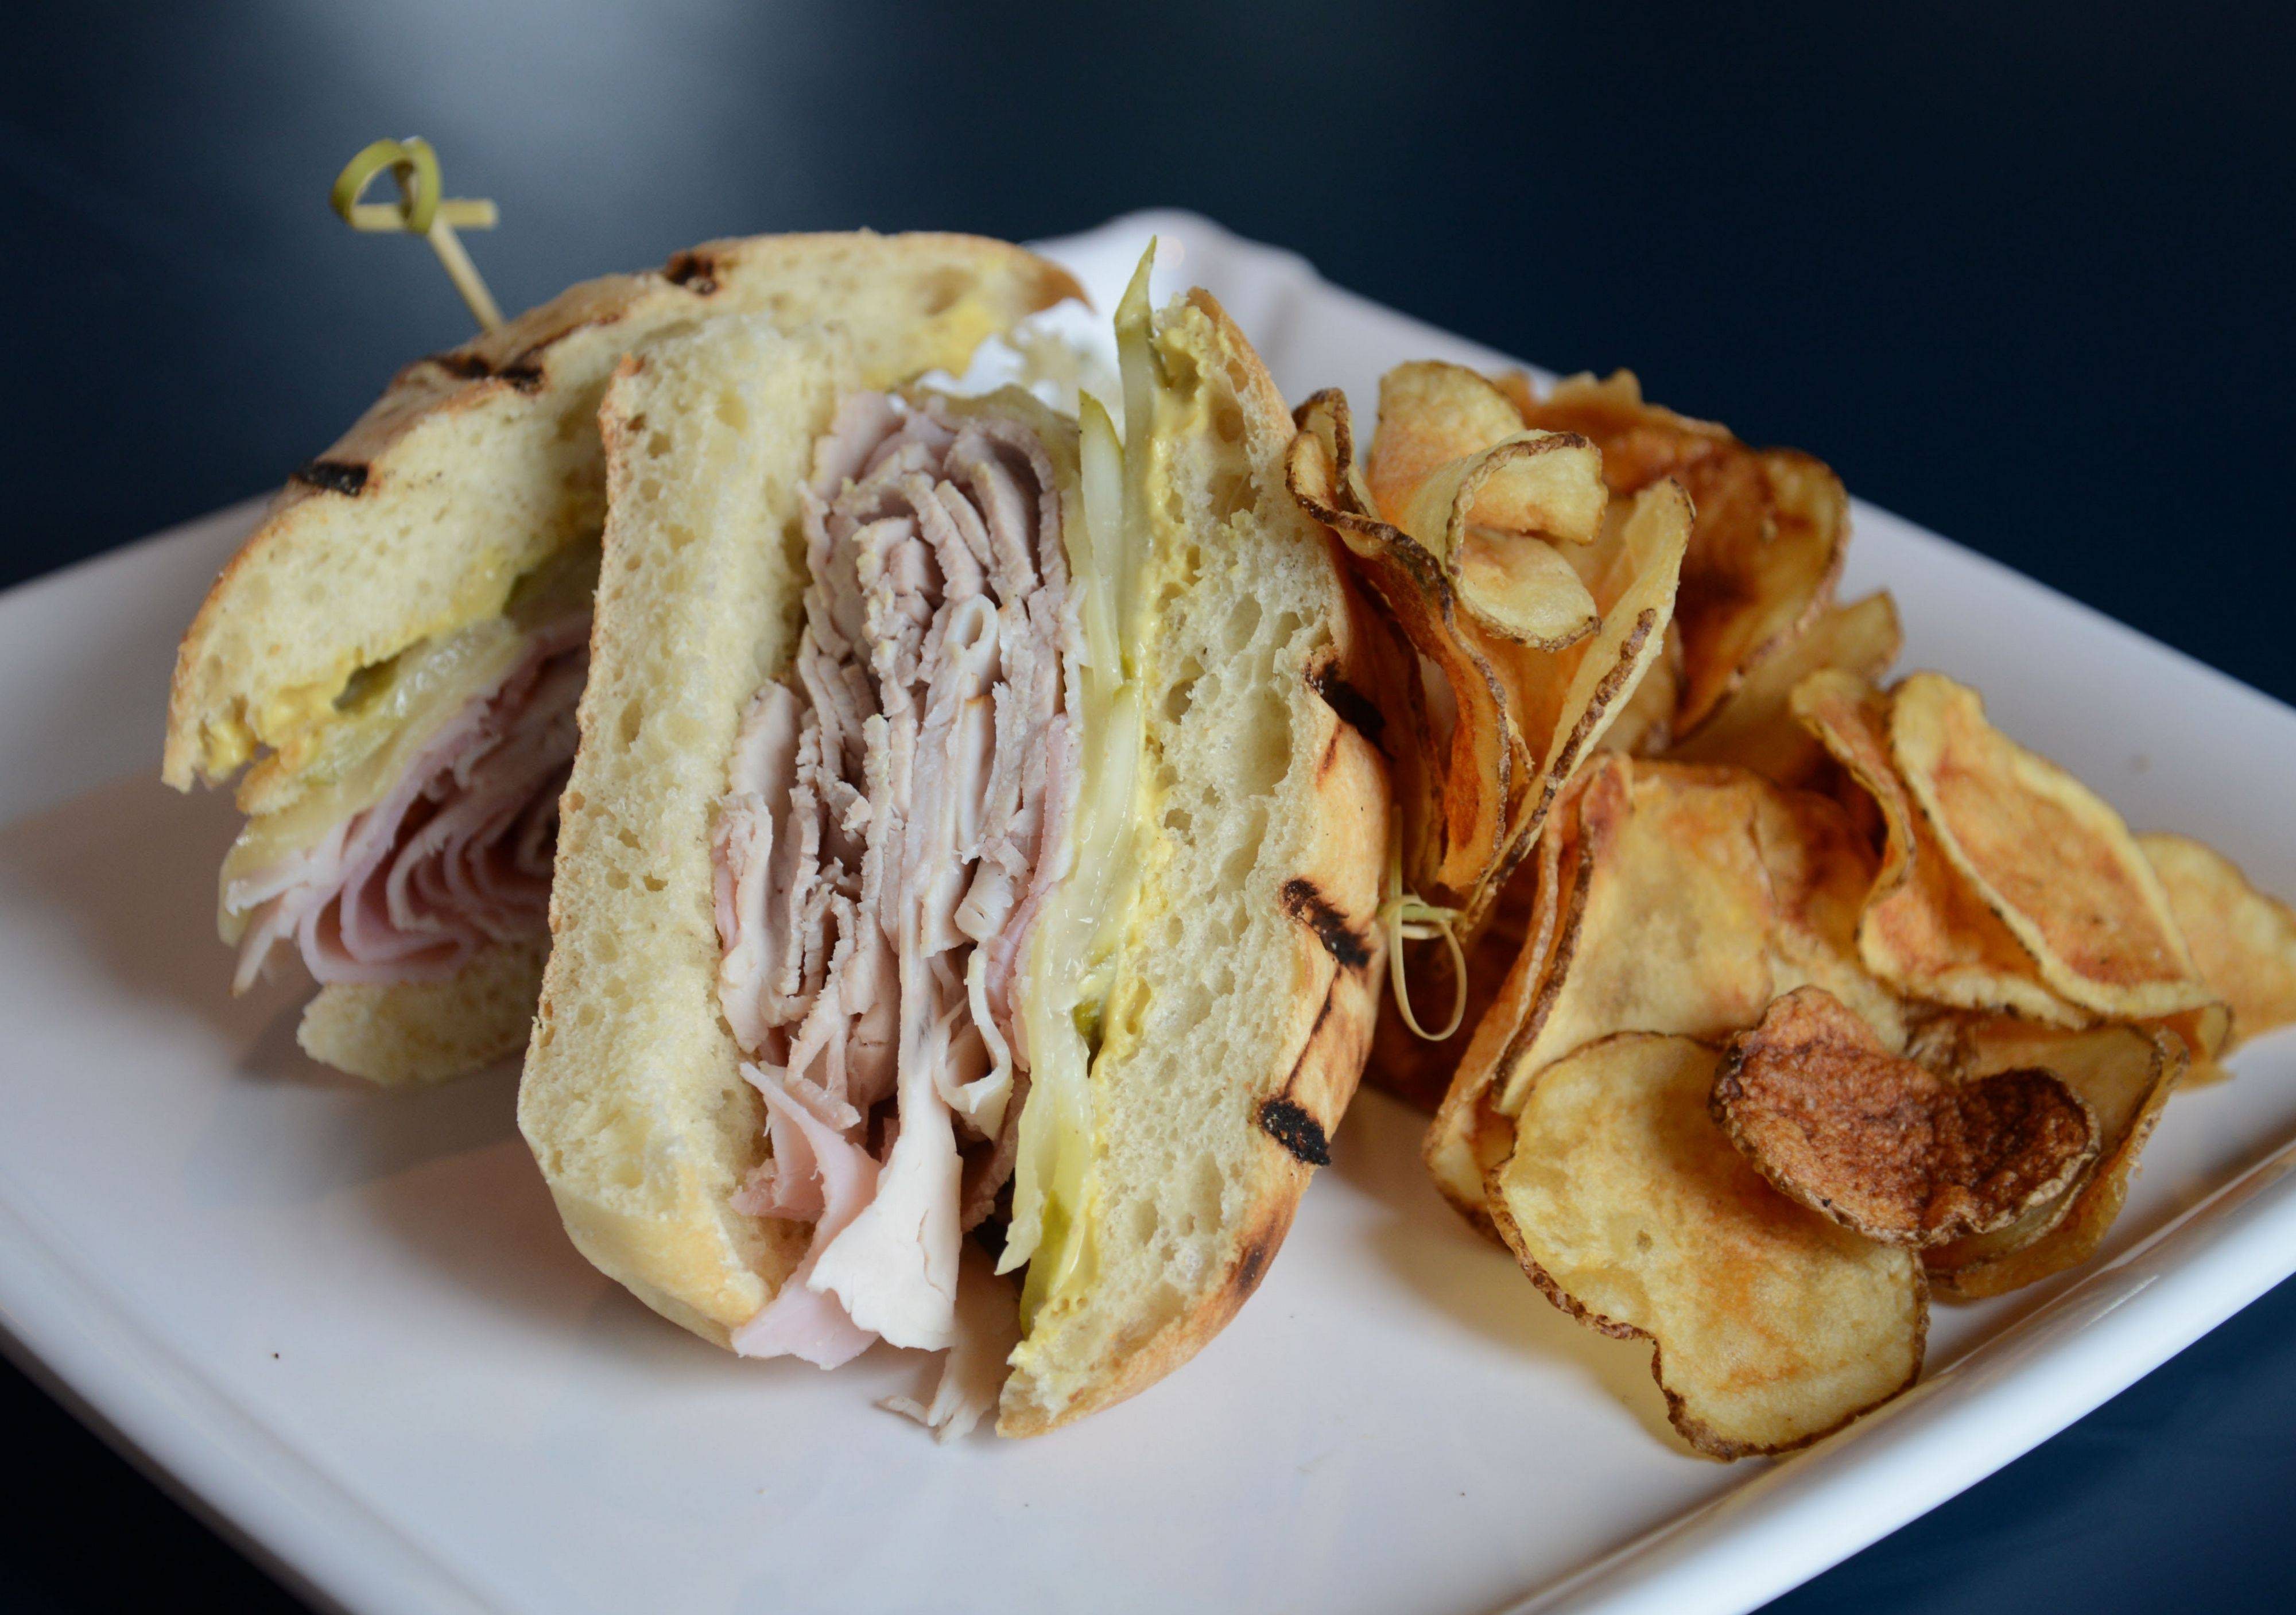 The Cuban Panini is one of the many well-executed sandwiches on the menu at McChesney's Pub & Grill at Prairie Landing Golf Club in West Chicago.